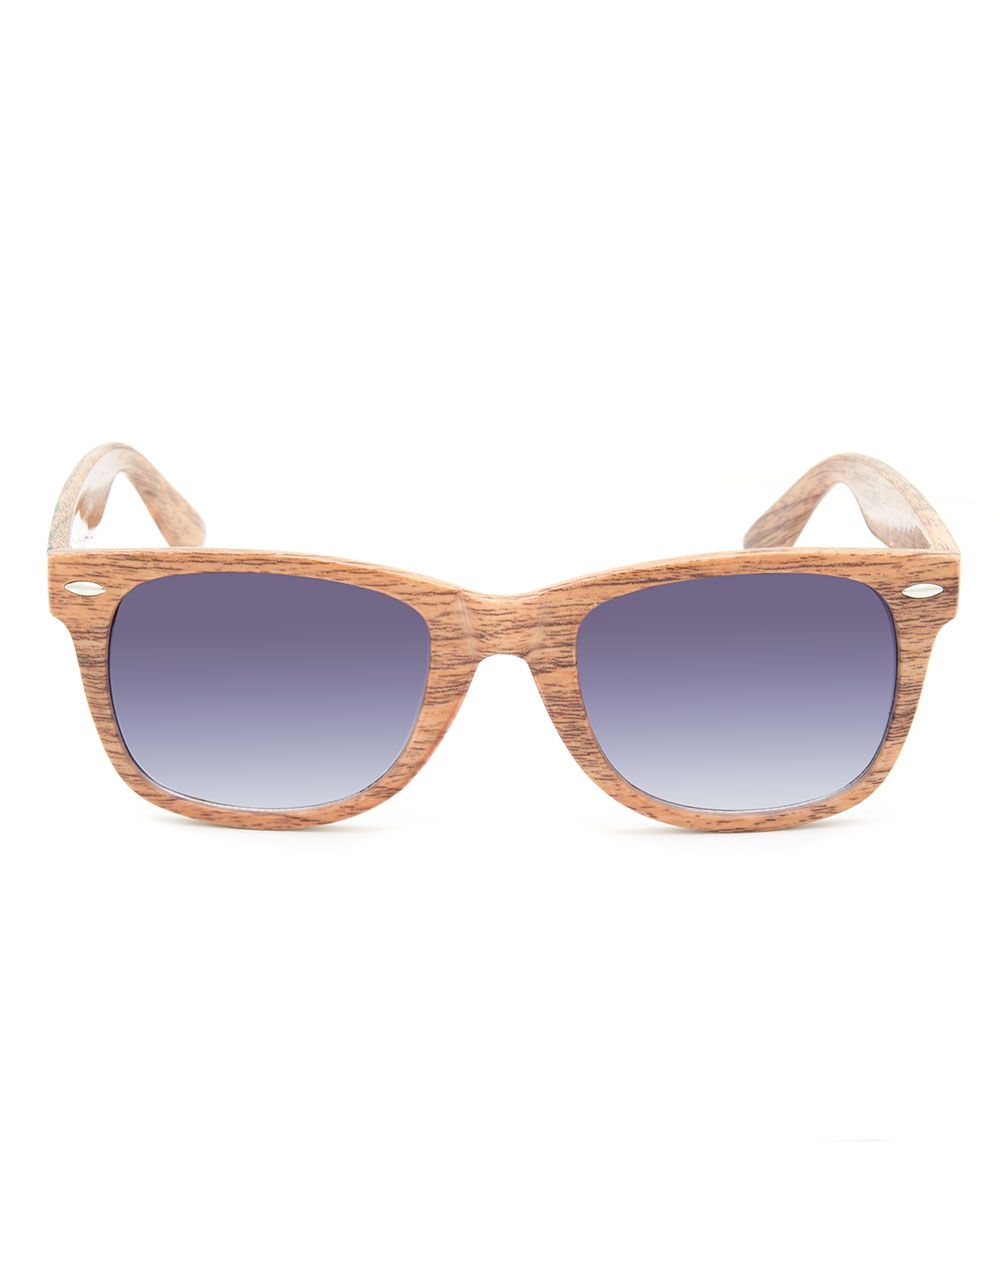 6b27fc2969 Blue Crown wood wayfarer sunglasses. Features faux wood plastic frames with  a geometric print on arms. Grey lens. 100% UV protection. Imported.